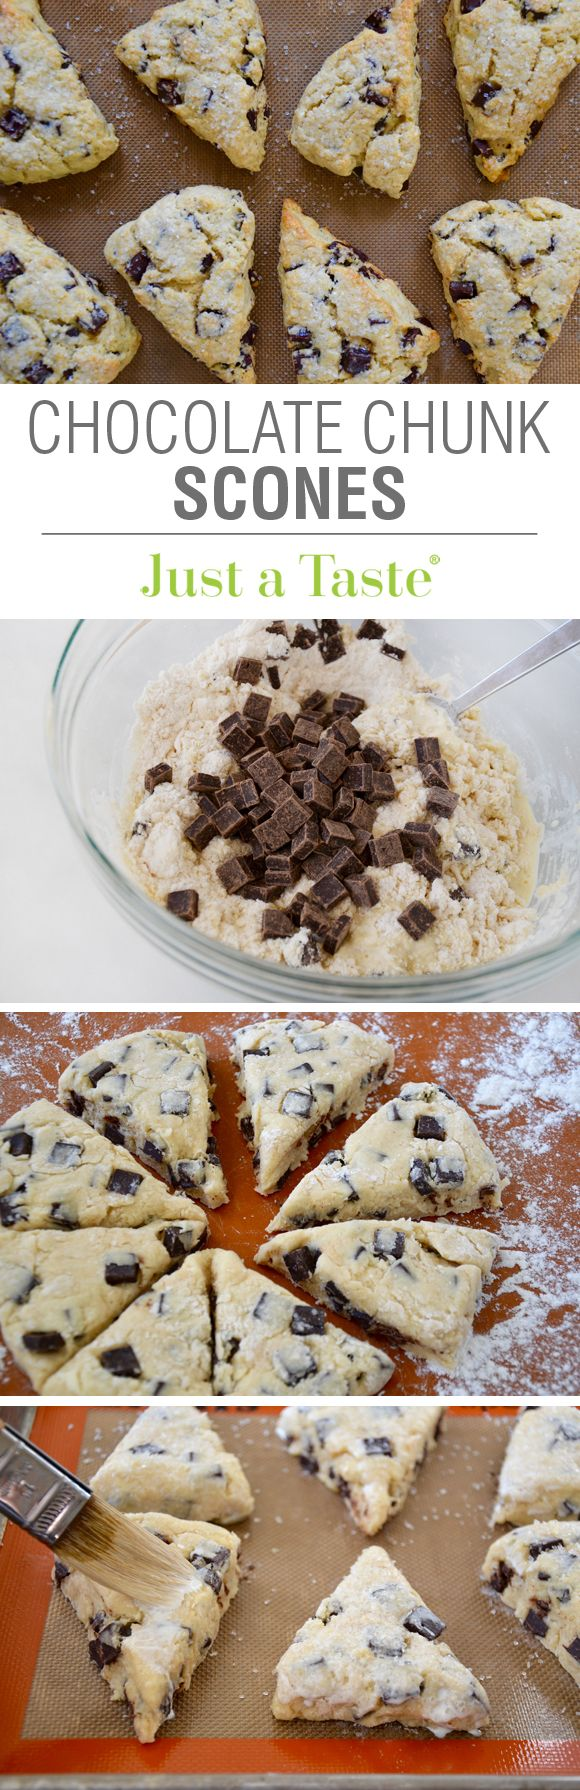 My FAVORITE Recipes: Chocolate Chunk Scones Recipe